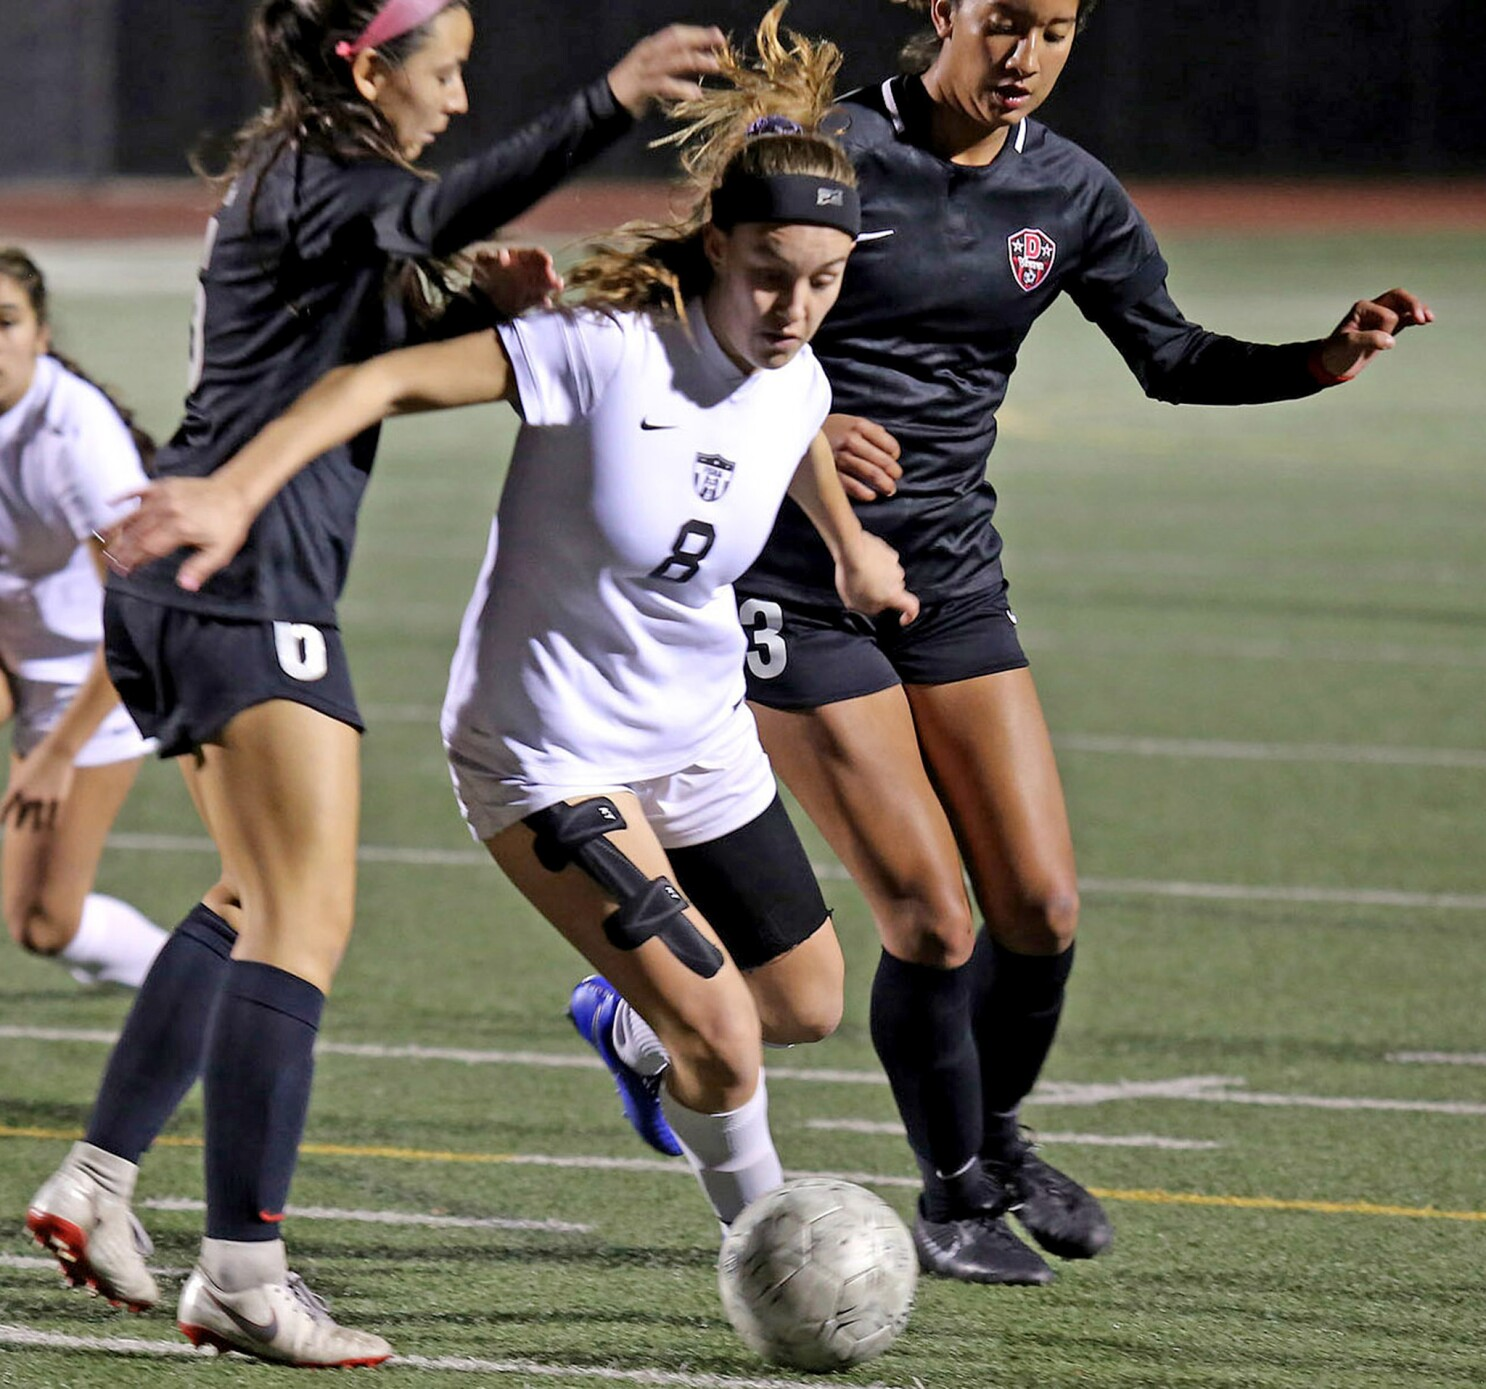 Girls Soccer Preview Flintridge Sacred Heart Academy Thirsty For More Postseason Success Los Angeles Times